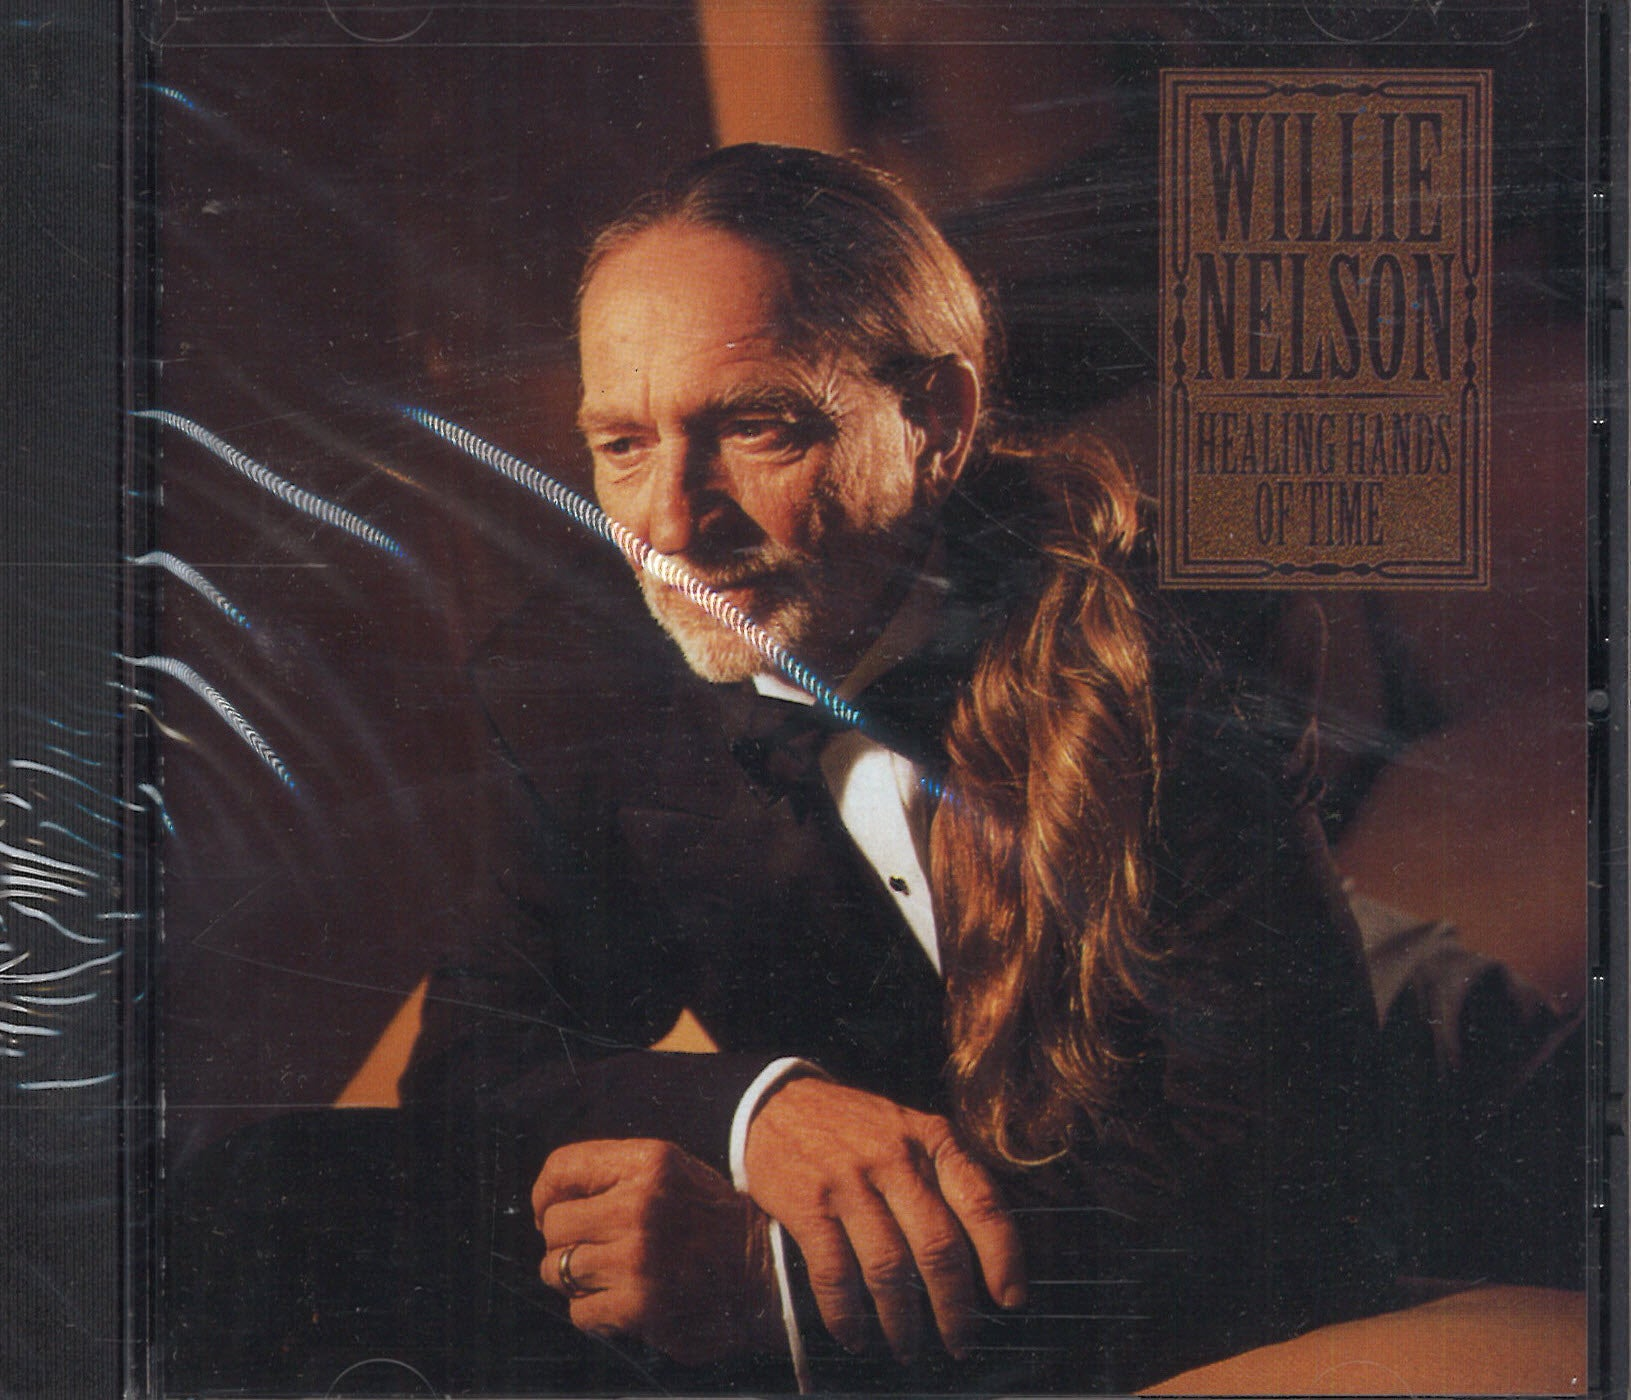 Willie Nelson Healing Hands Of Time